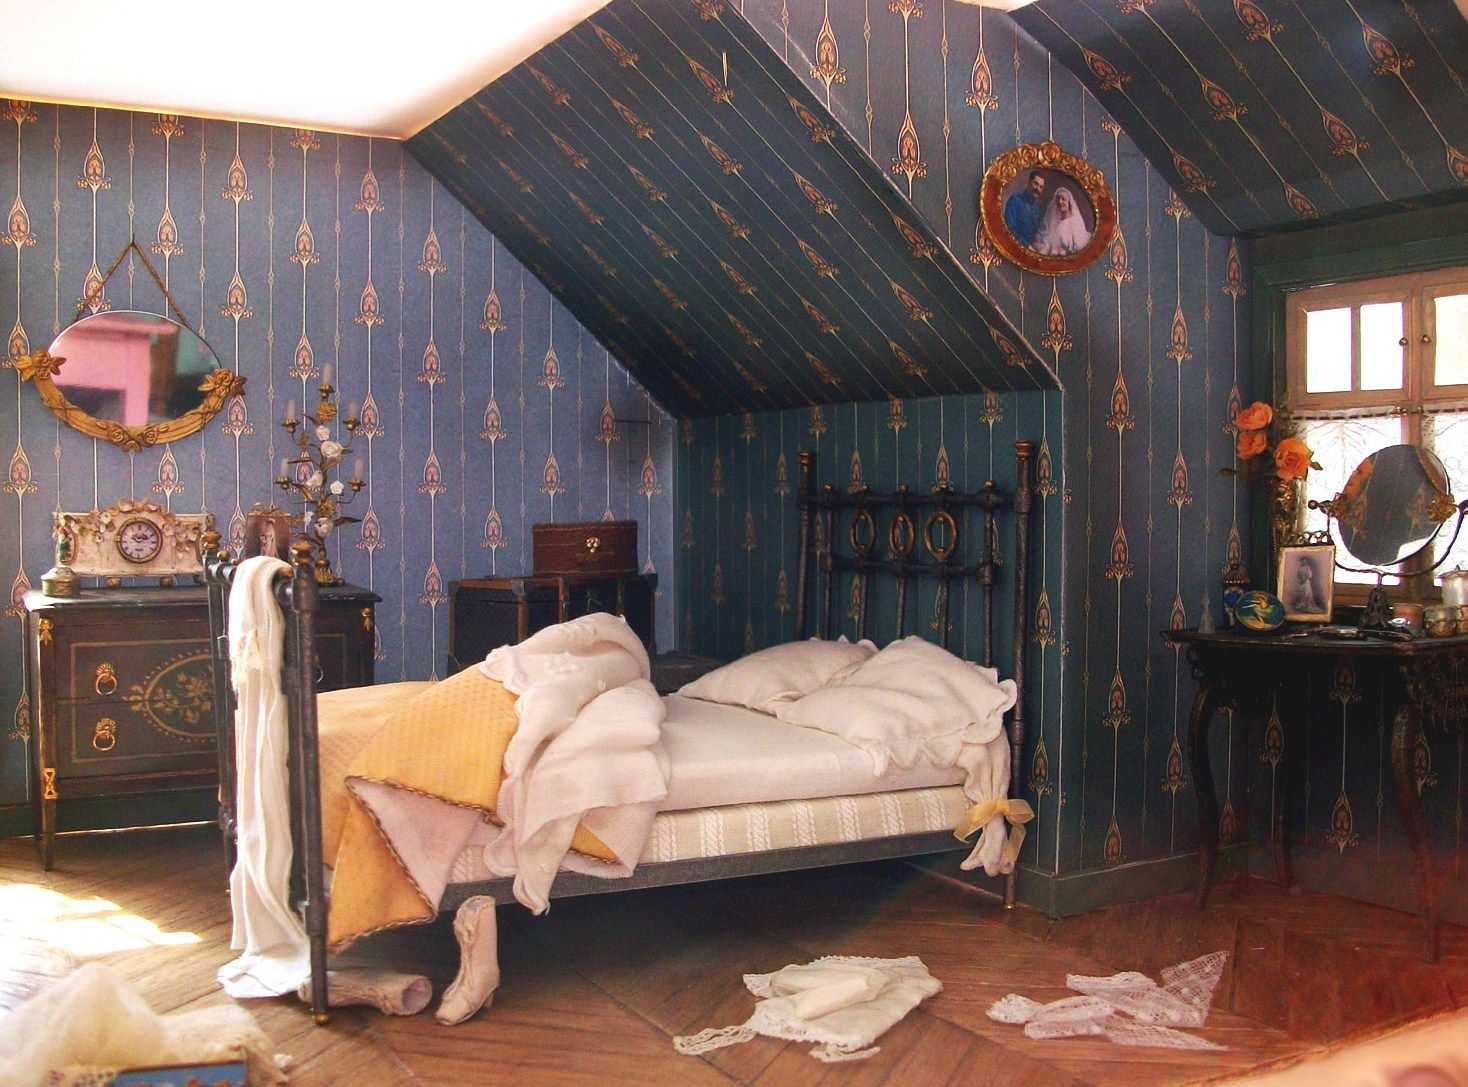 Dollhouse Attic Bedroom I Love That It S Not Tidy It Makes It Even